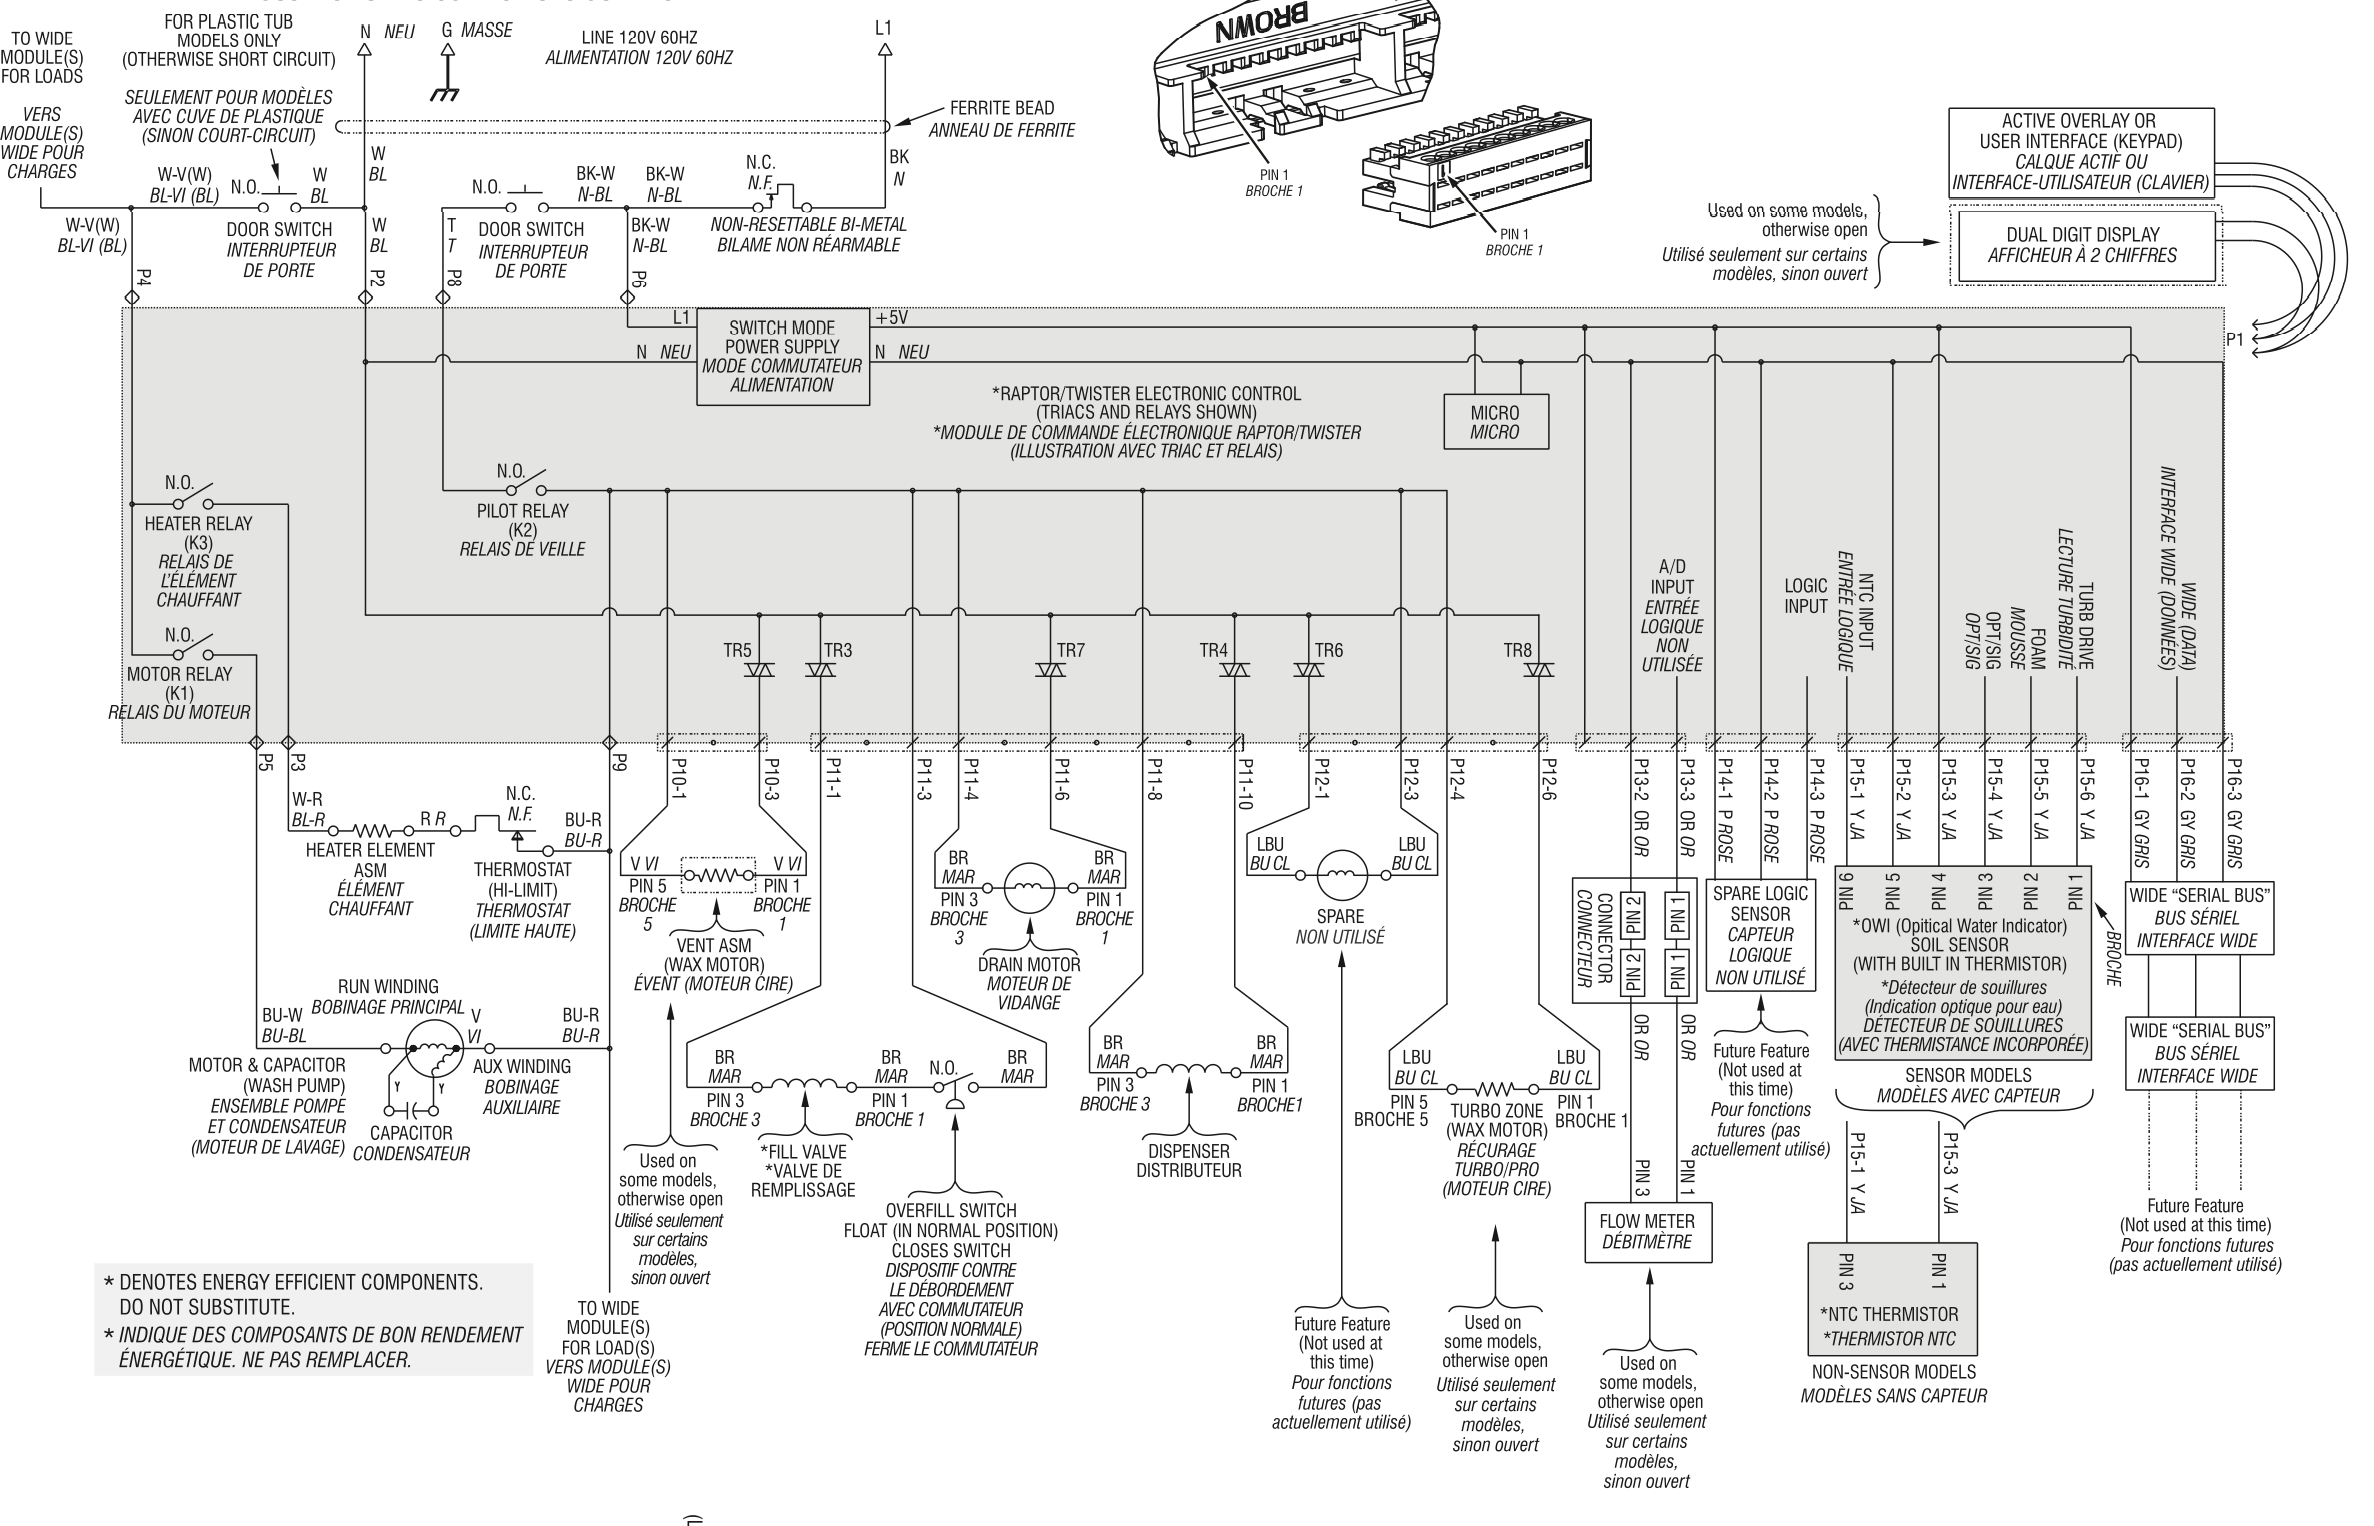 2012 10 05_175037_screen_shot_2012 10 05_at_11.49.41_am i need a wiring diagram for a mod mdbh979awb2 dishwasher it is a kitchenaid dishwasher wiring diagram at edmiracle.co